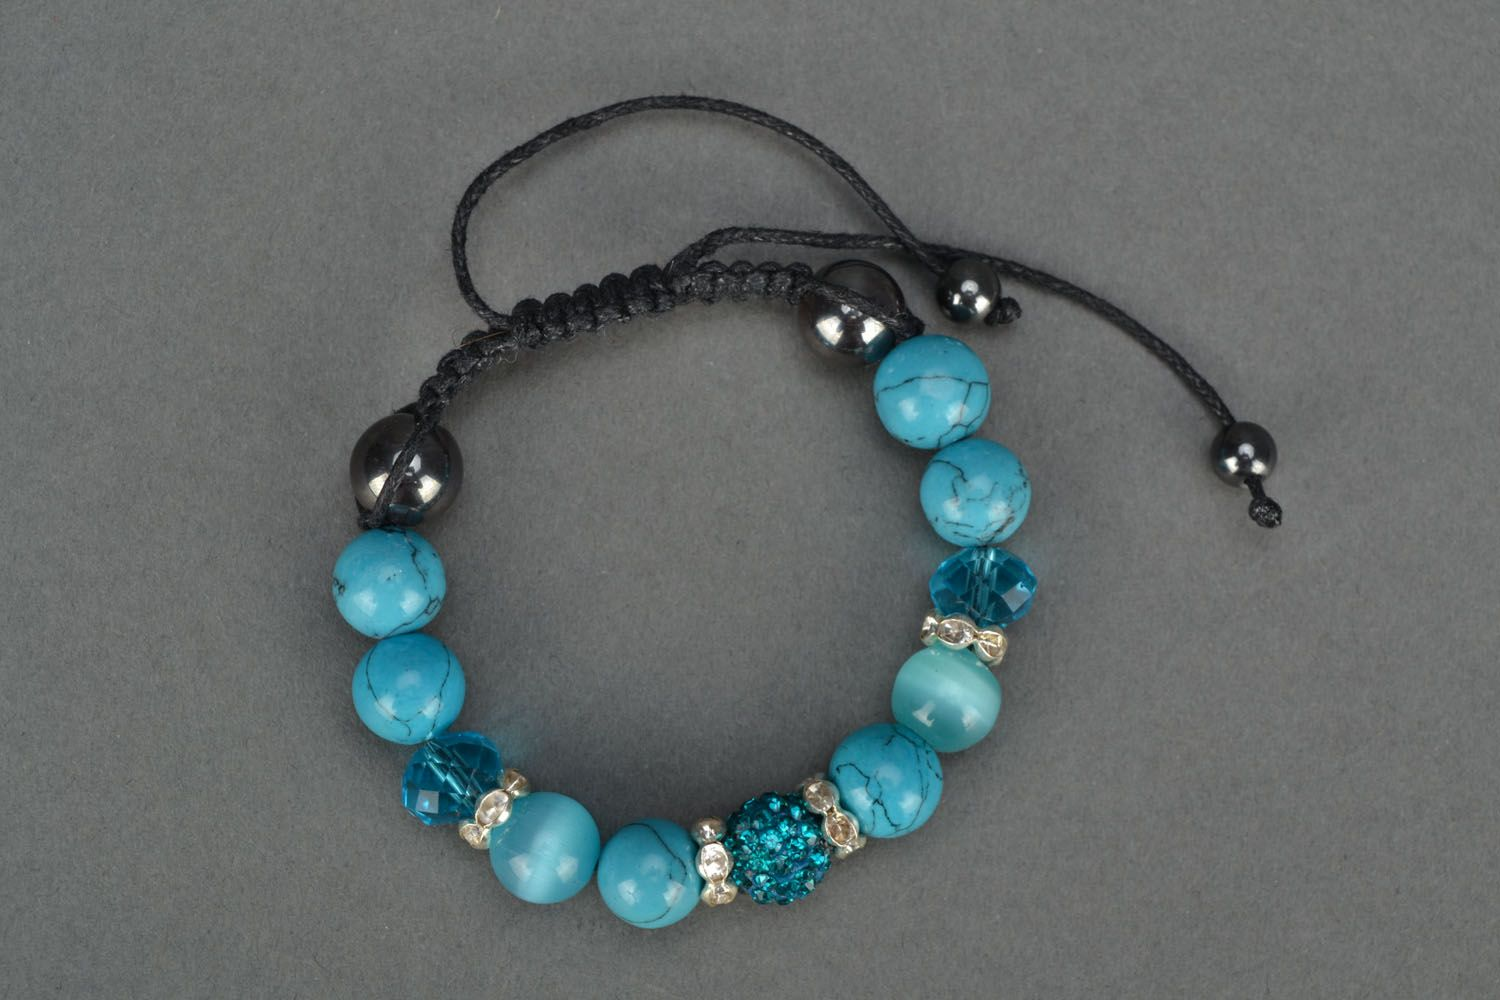 Homemade bracelet with natural stones Blue Sky photo 2